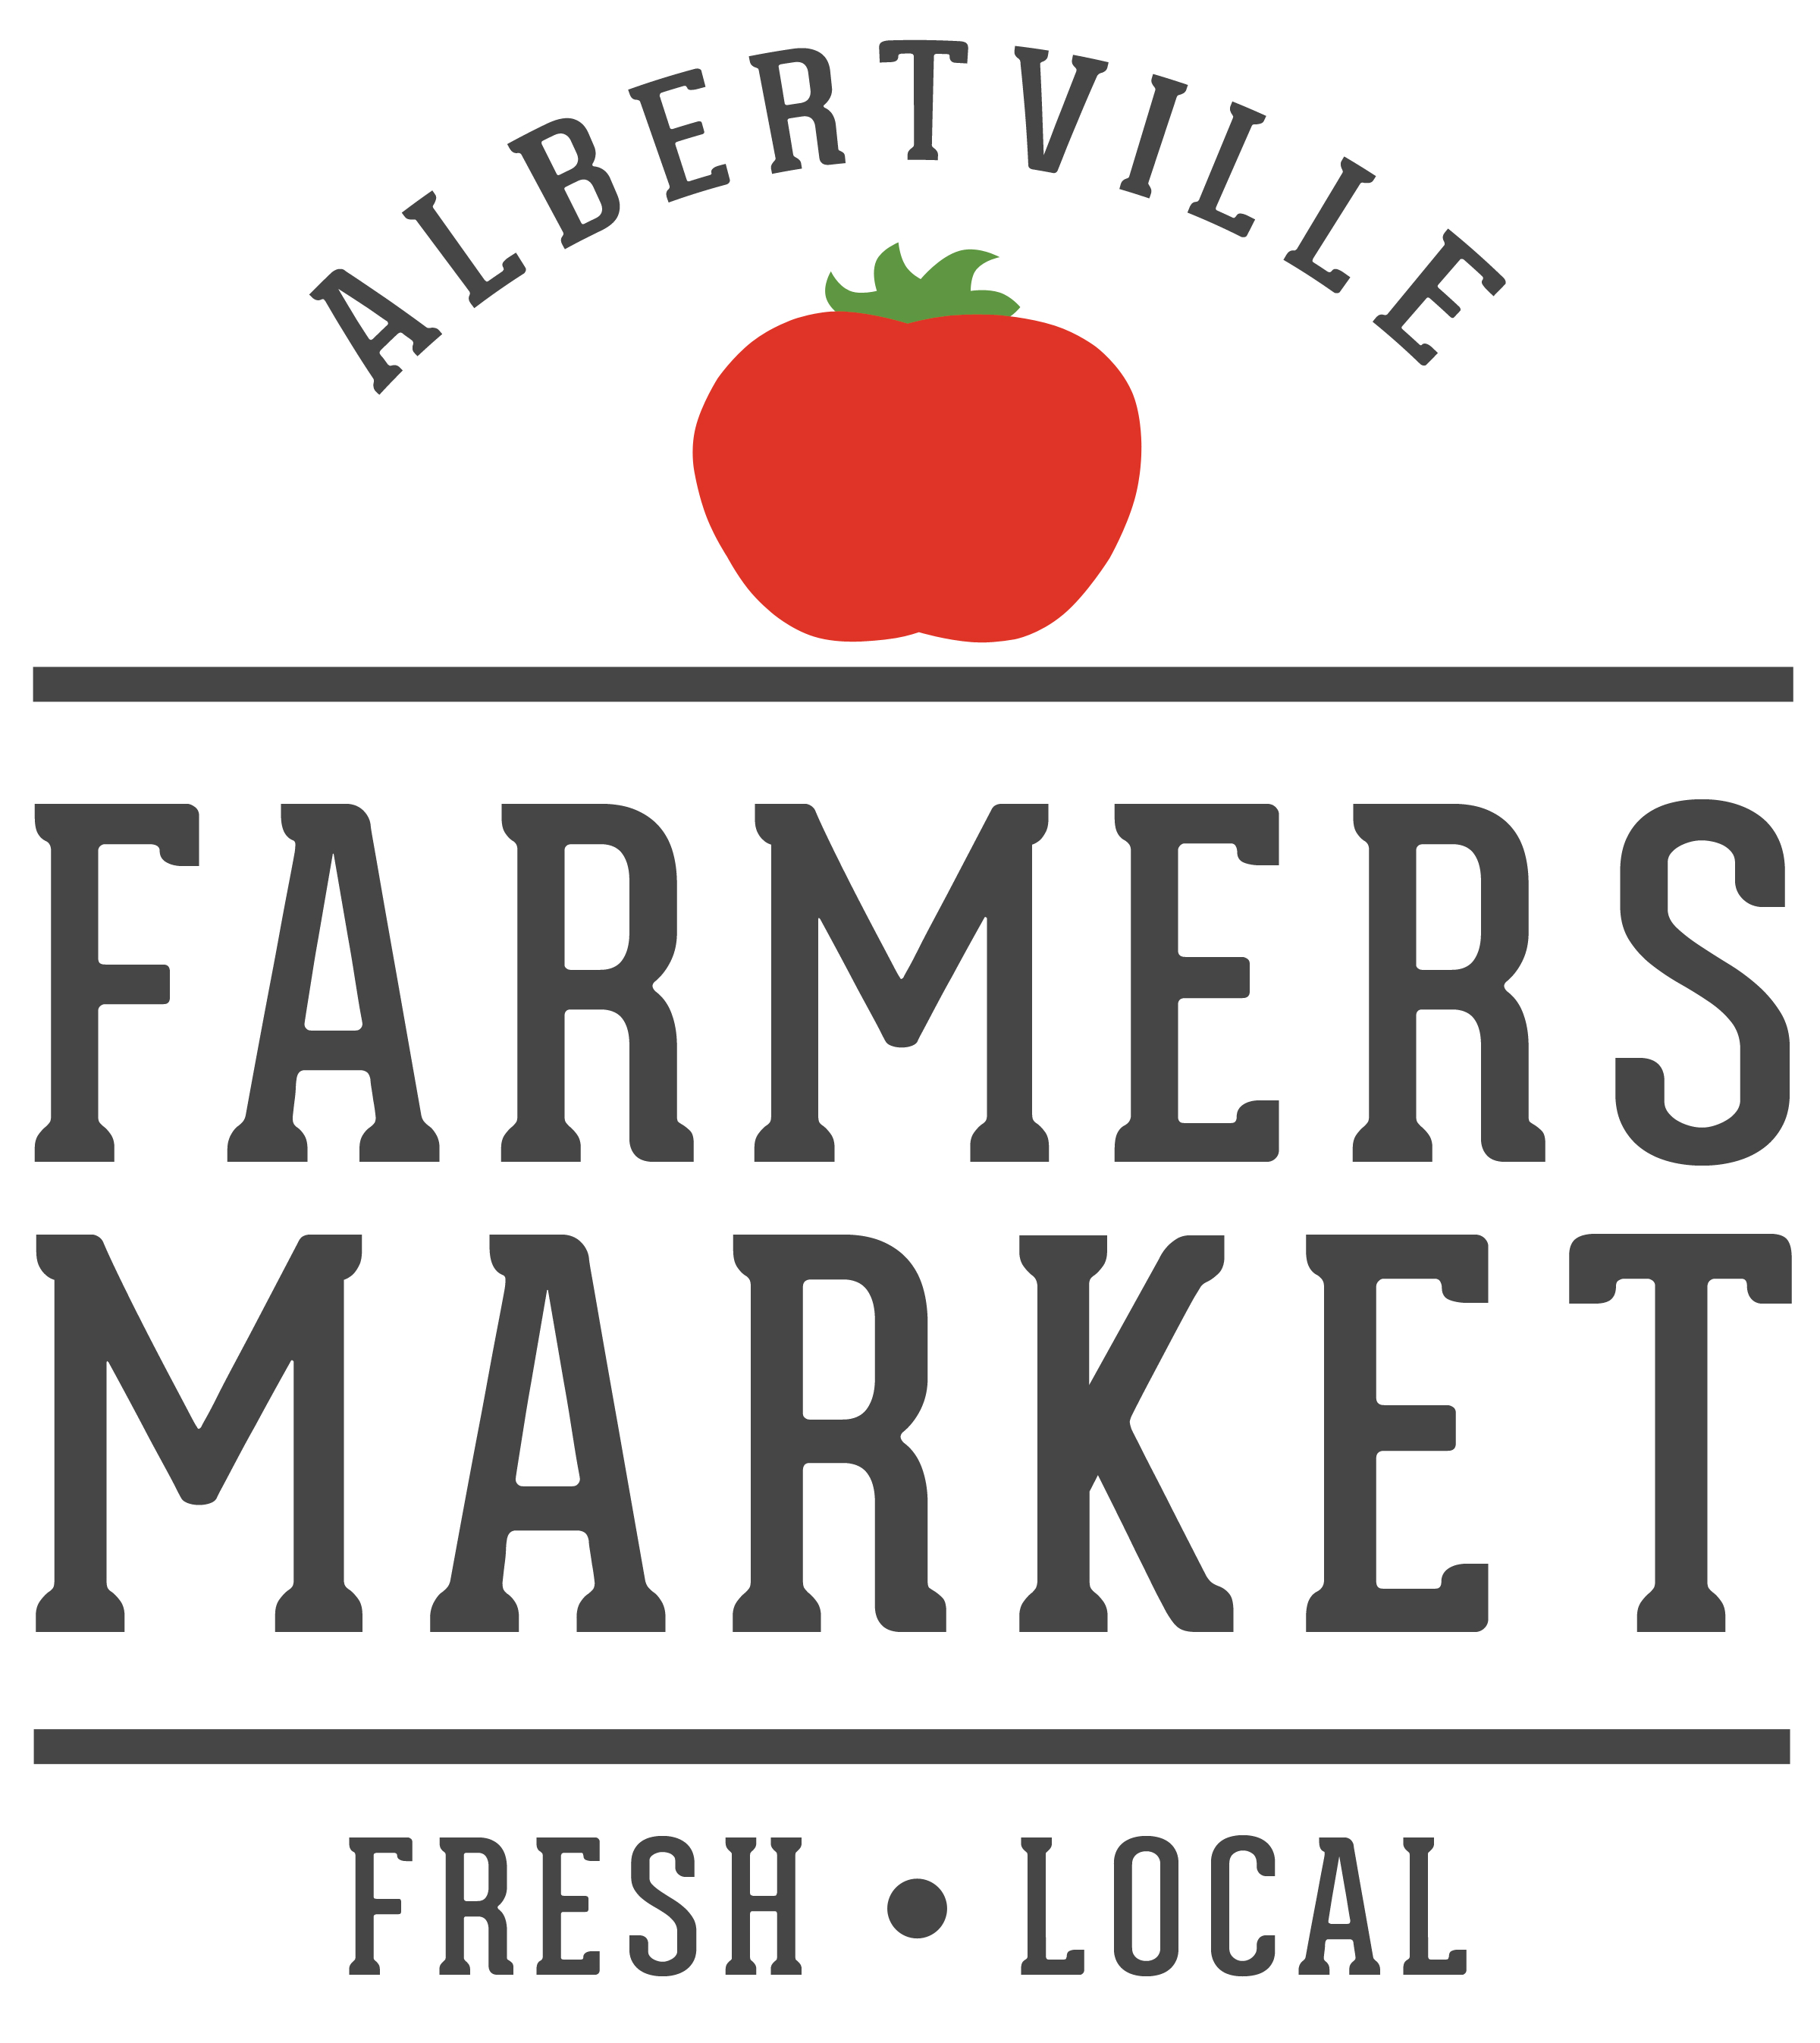 https://alabama-travel.s3.amazonaws.com/partners-uploads/photo/image/577544e51d09a0289f000169/farmersmarket_aville.jpg